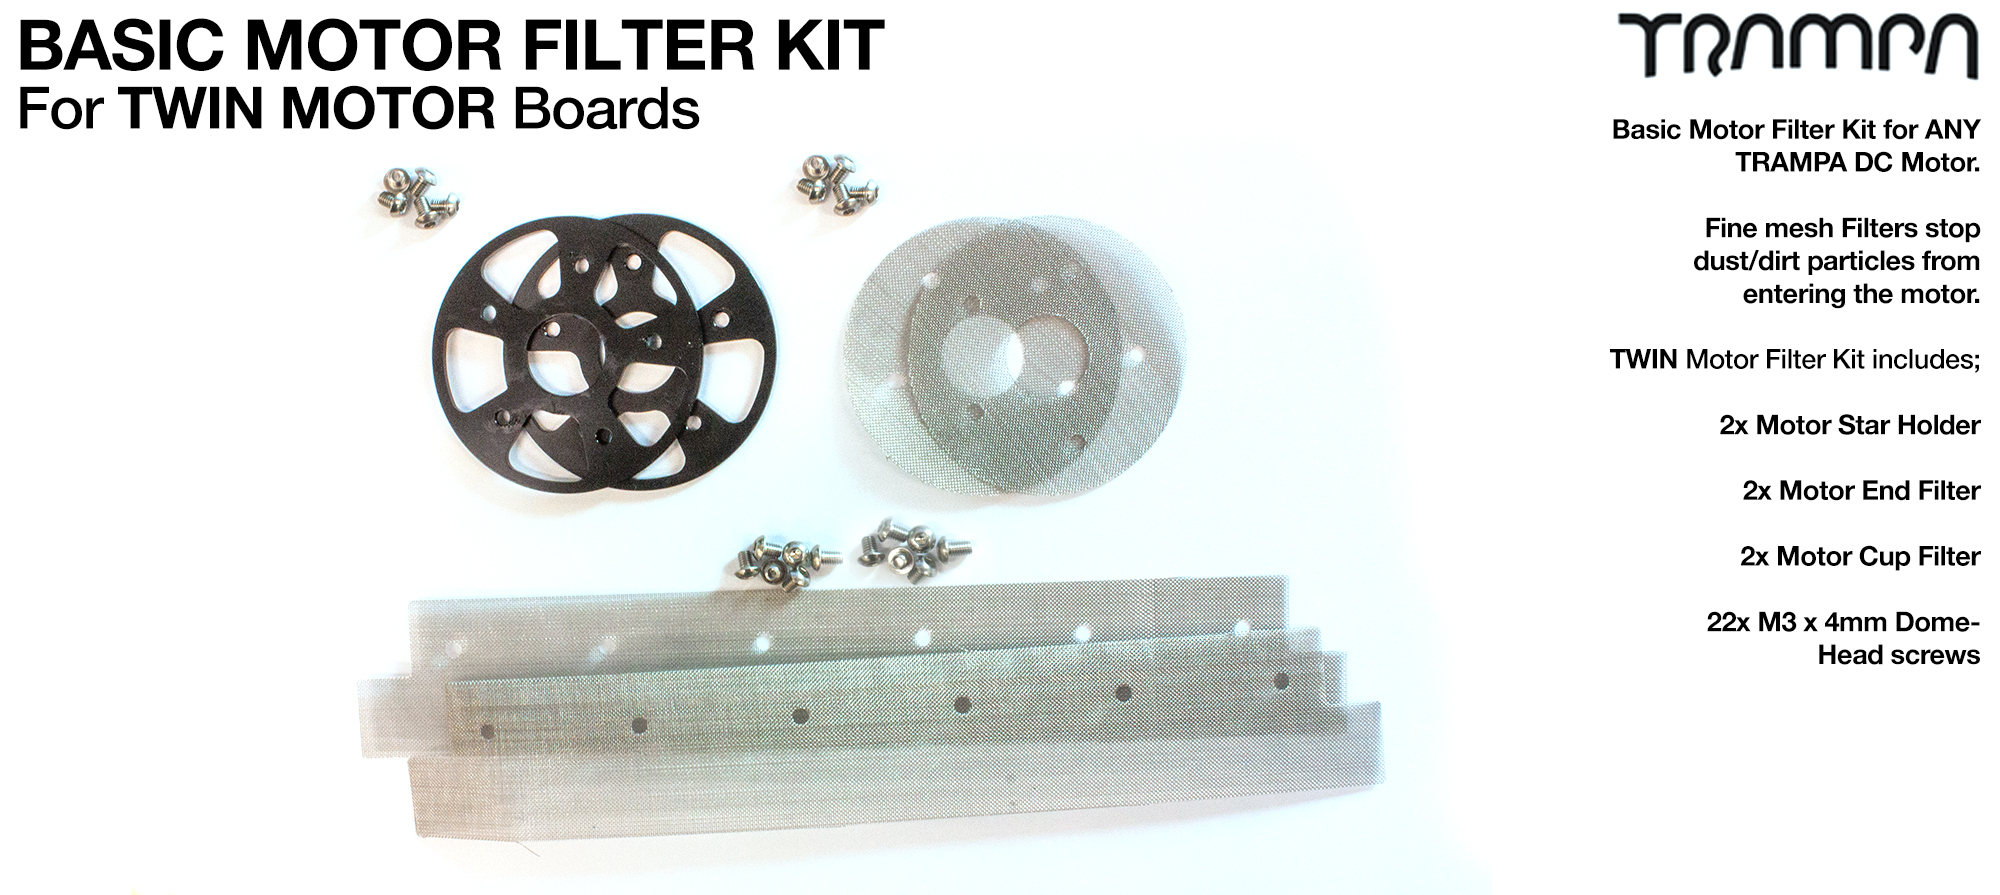 2x Stainless Steel Mesh Filter Kit with Bolts for TRAMPA Motors